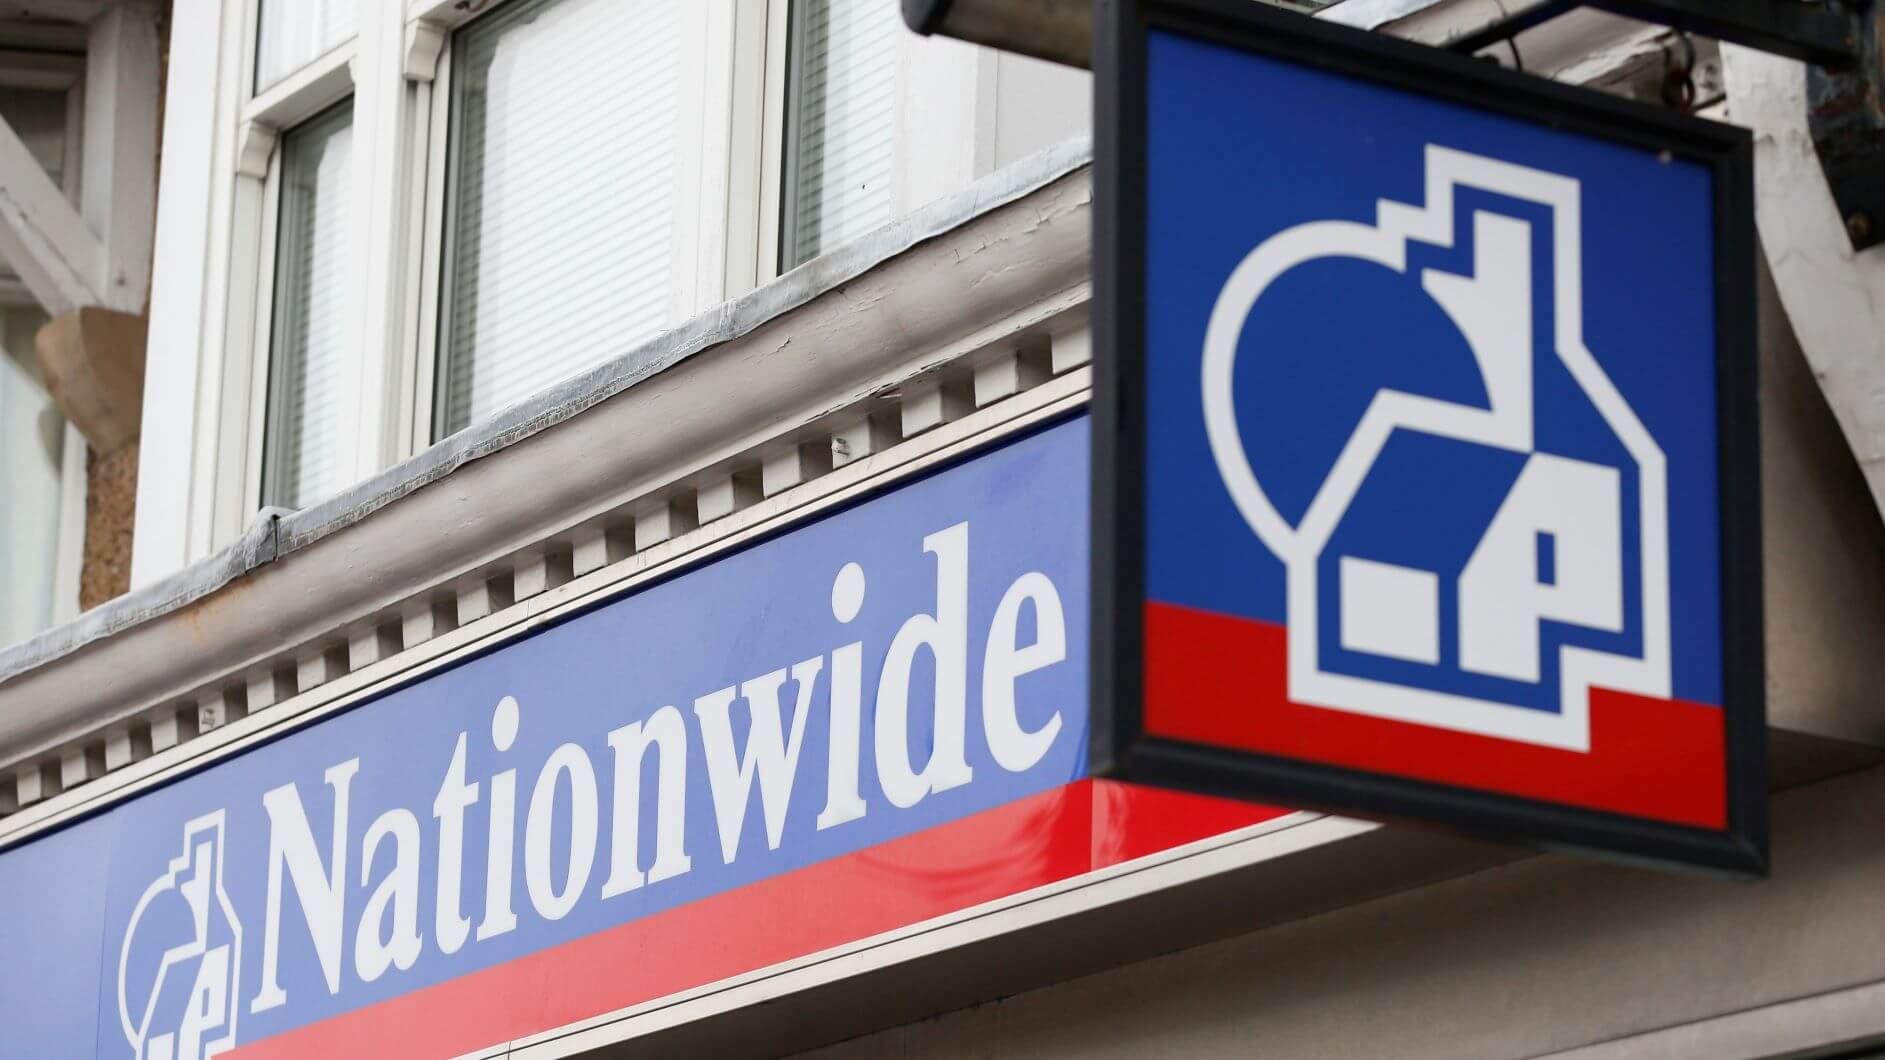 Nationwide Sees Profits Tumble On Writedowns And IT Investment